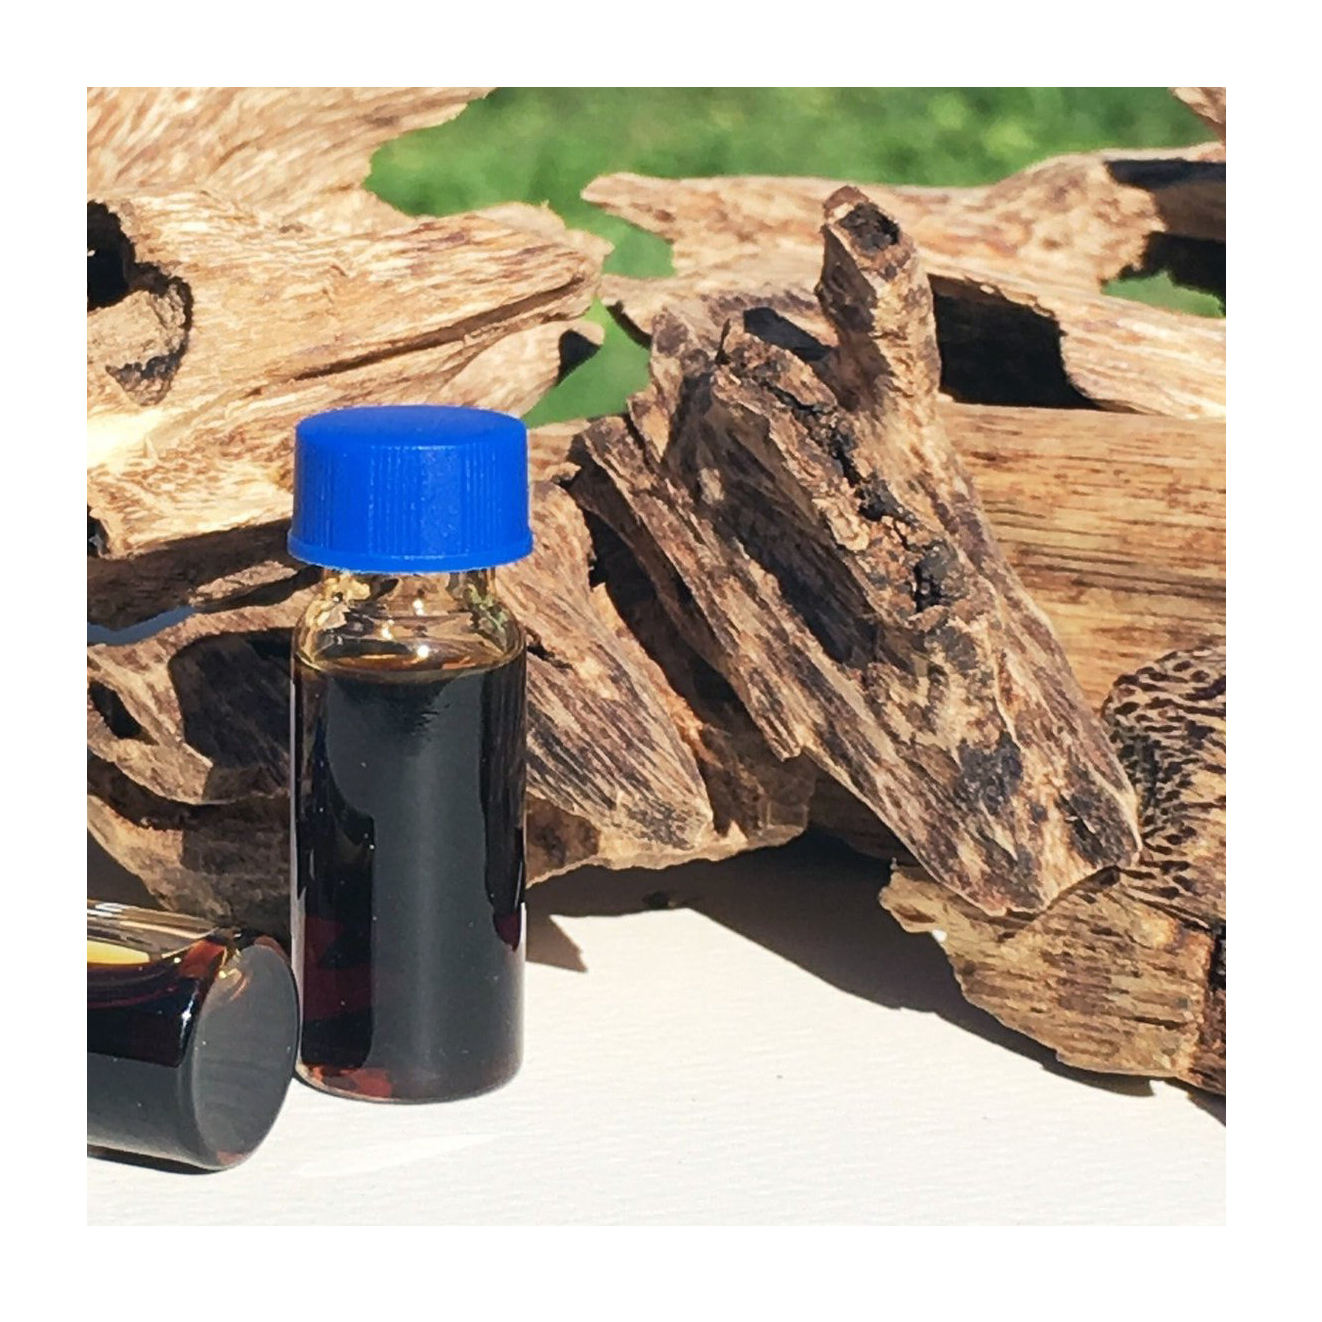 2020 Pure Agarwood Oil / Oud Oil / Agarwood Essential Oil Competitive Price From Thailand